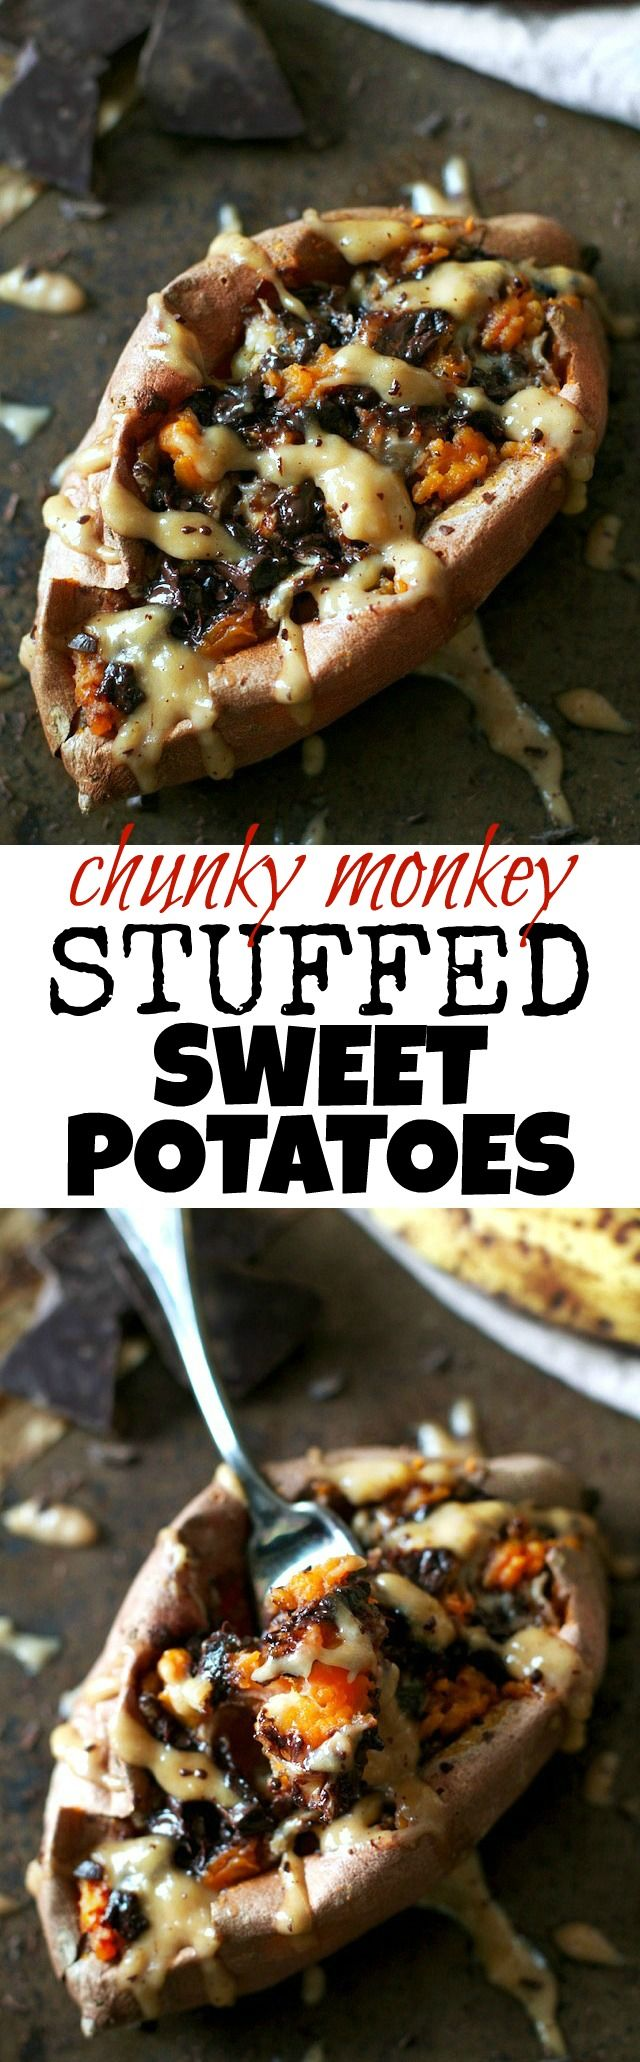 These Chunky Monkey Stuffed Sweet Potatoes are loaded with gooey caramelized bananas and melted dark chocolate before being topped with a creamy banana nut sauce. An irresistibly delicious gluten free and vegan treat! | runningwithspoons.com #recipe #healthy #sweetpotatoes #vegan